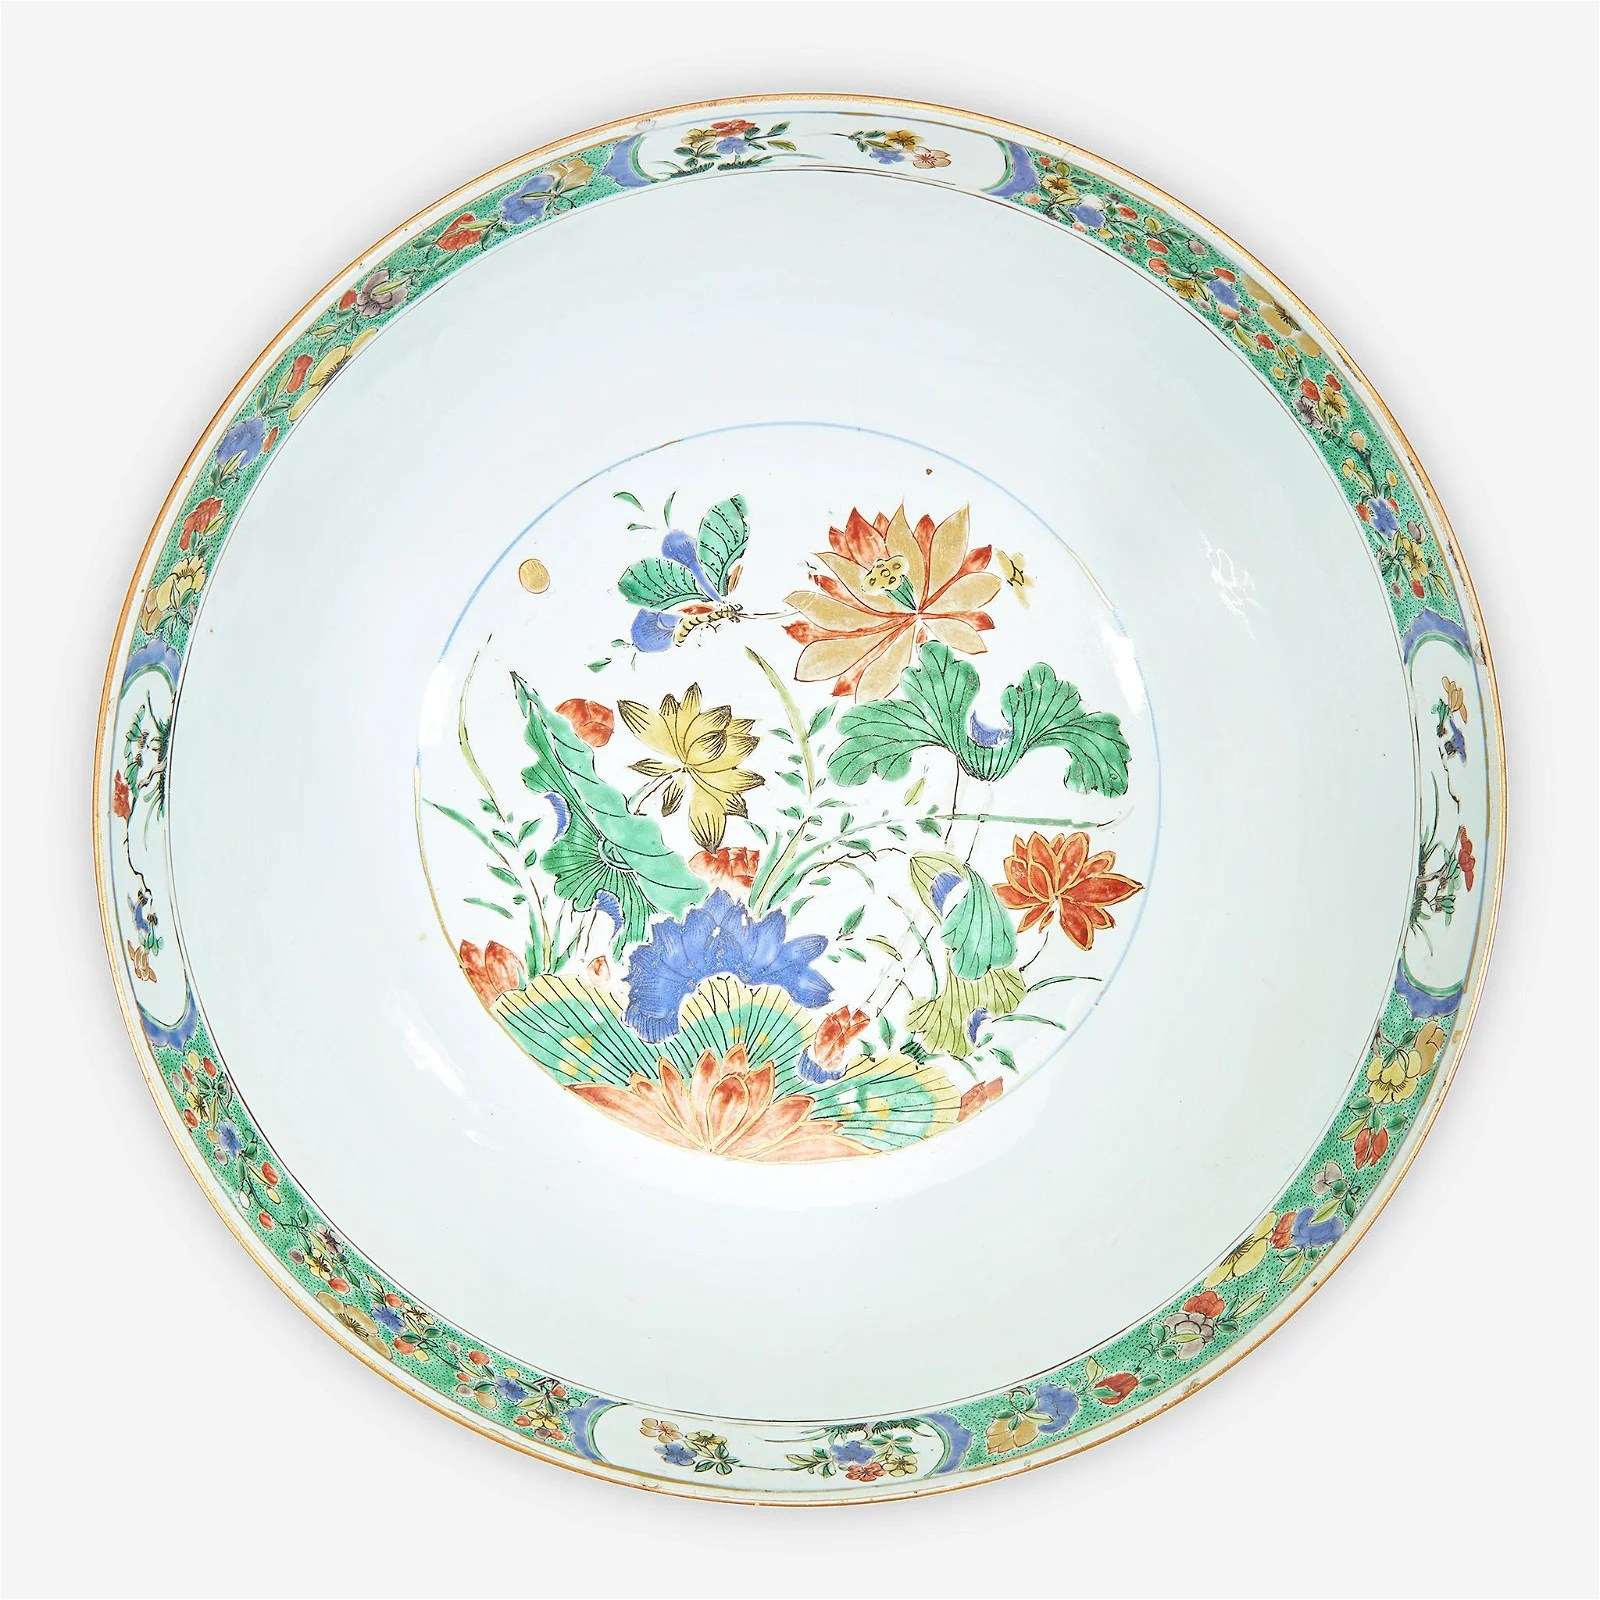 A Chinese export famille verte-decorated porcelain